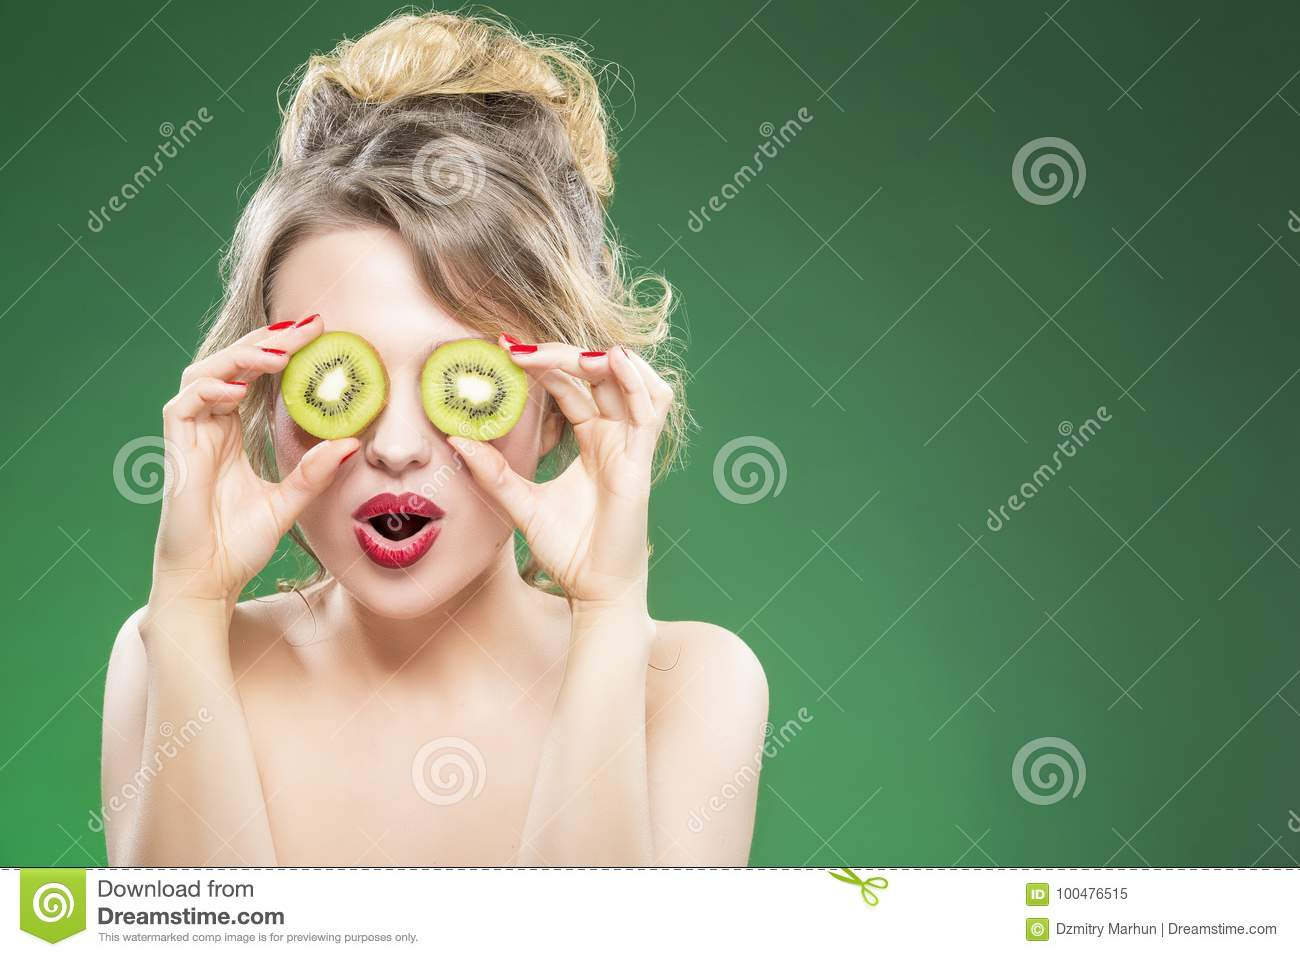 Caucasian Nude Model Making Faces while Posing With Two Kiwi Slices